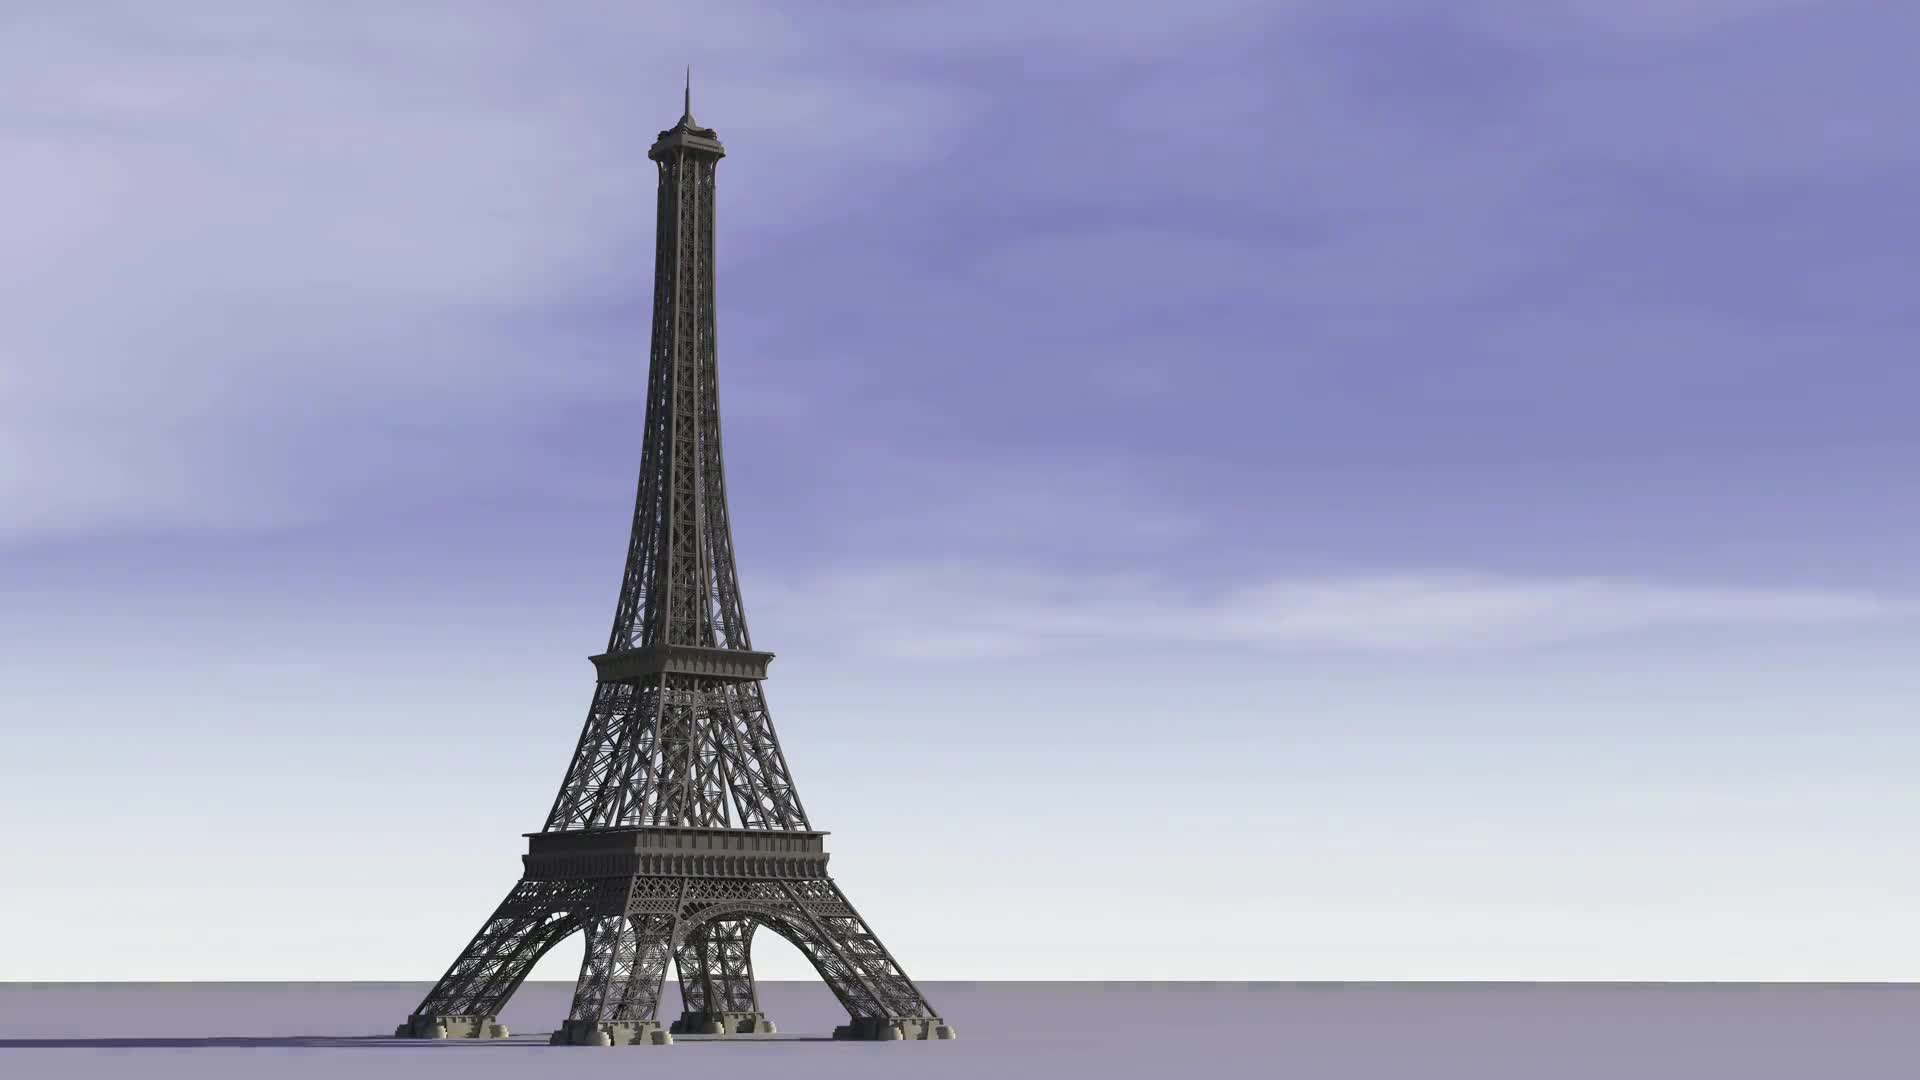 Eiffel tower eifel paris tourists art